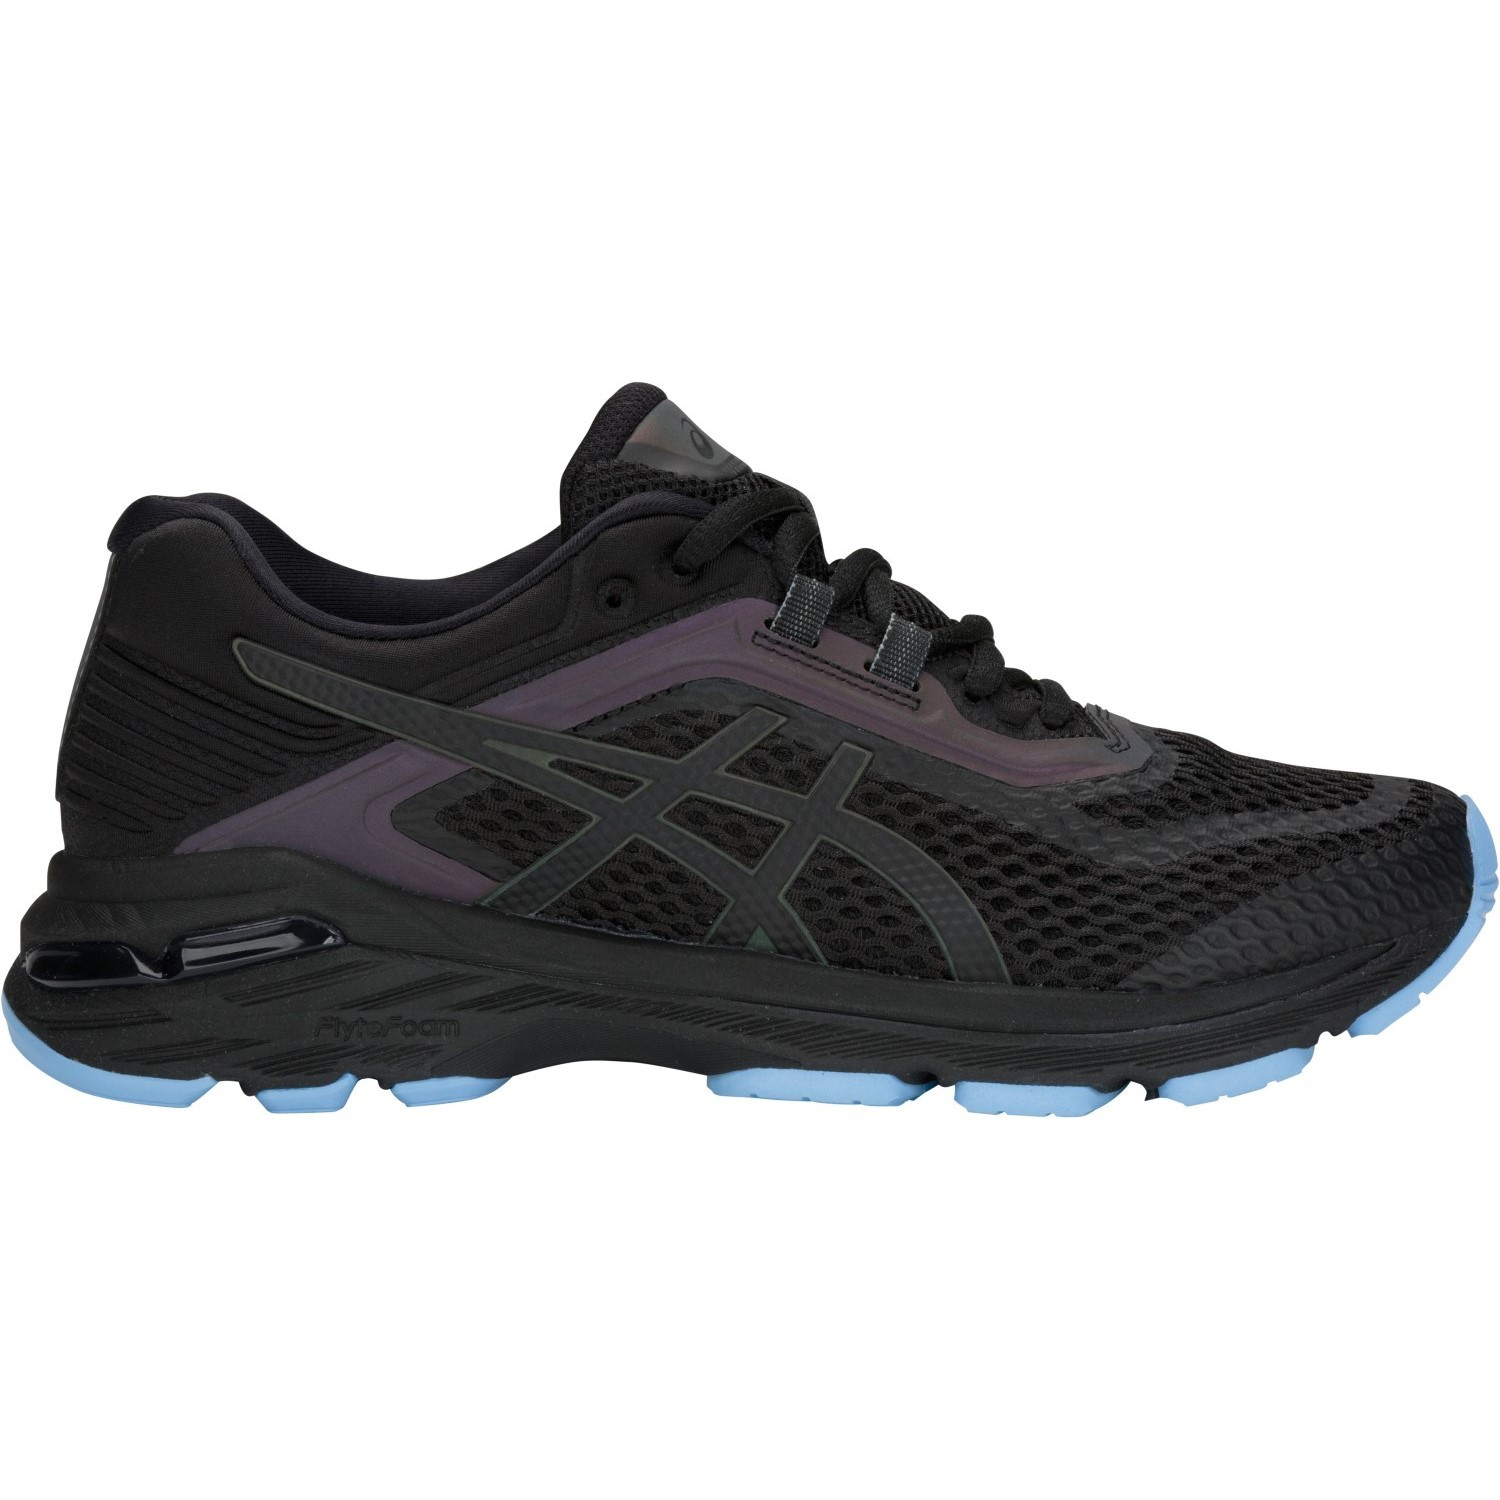 Asics GT-2000 6 Lite-Show - Womens Running Shoes